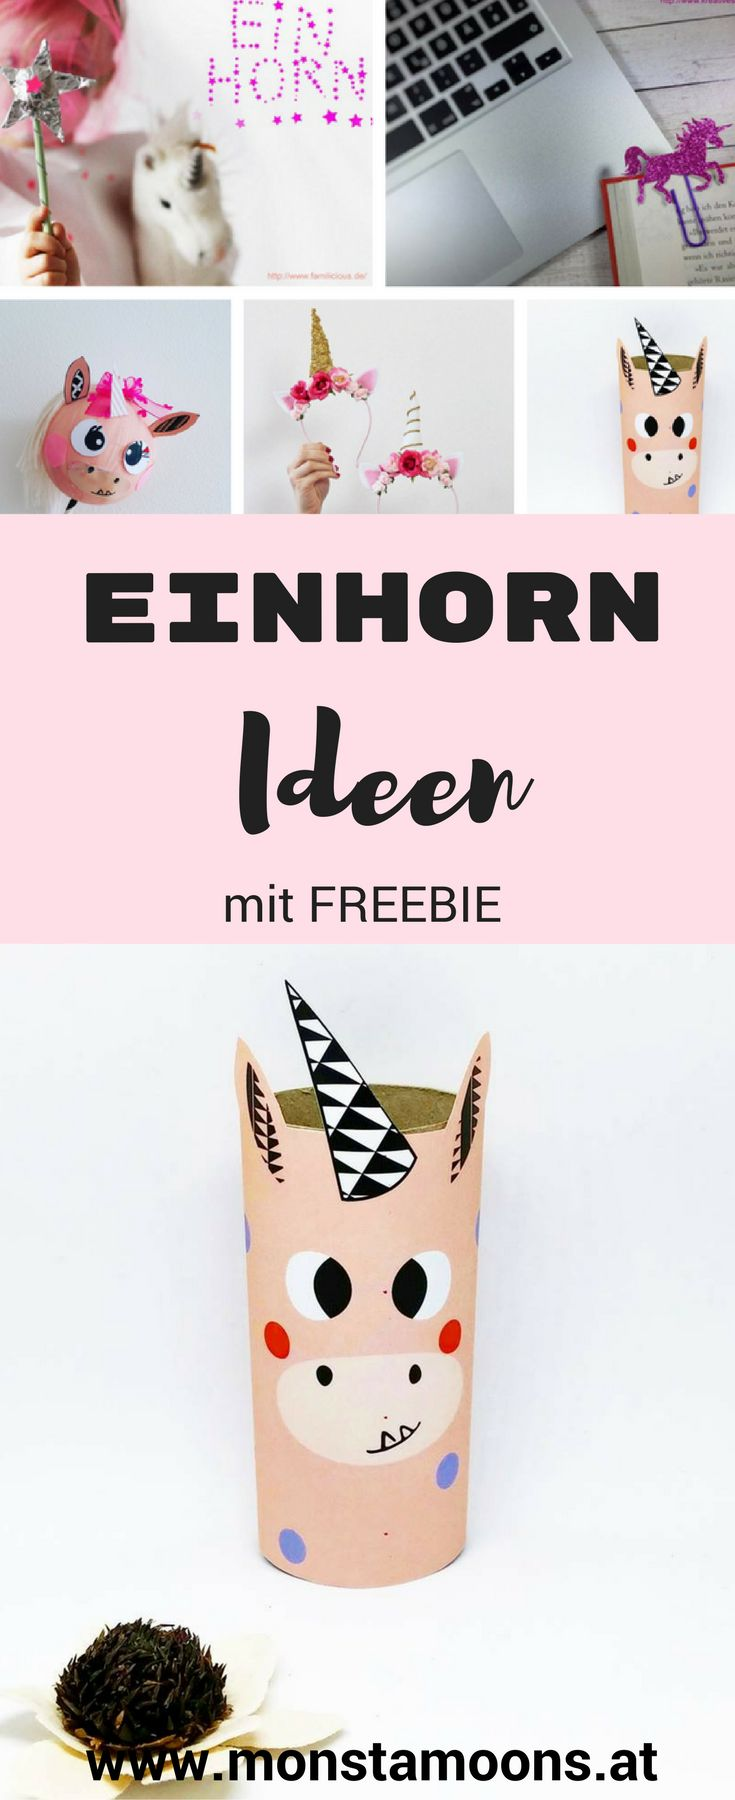 die besten 25 einhorn party ideen auf pinterest regenbogen einhorn party einhorn. Black Bedroom Furniture Sets. Home Design Ideas